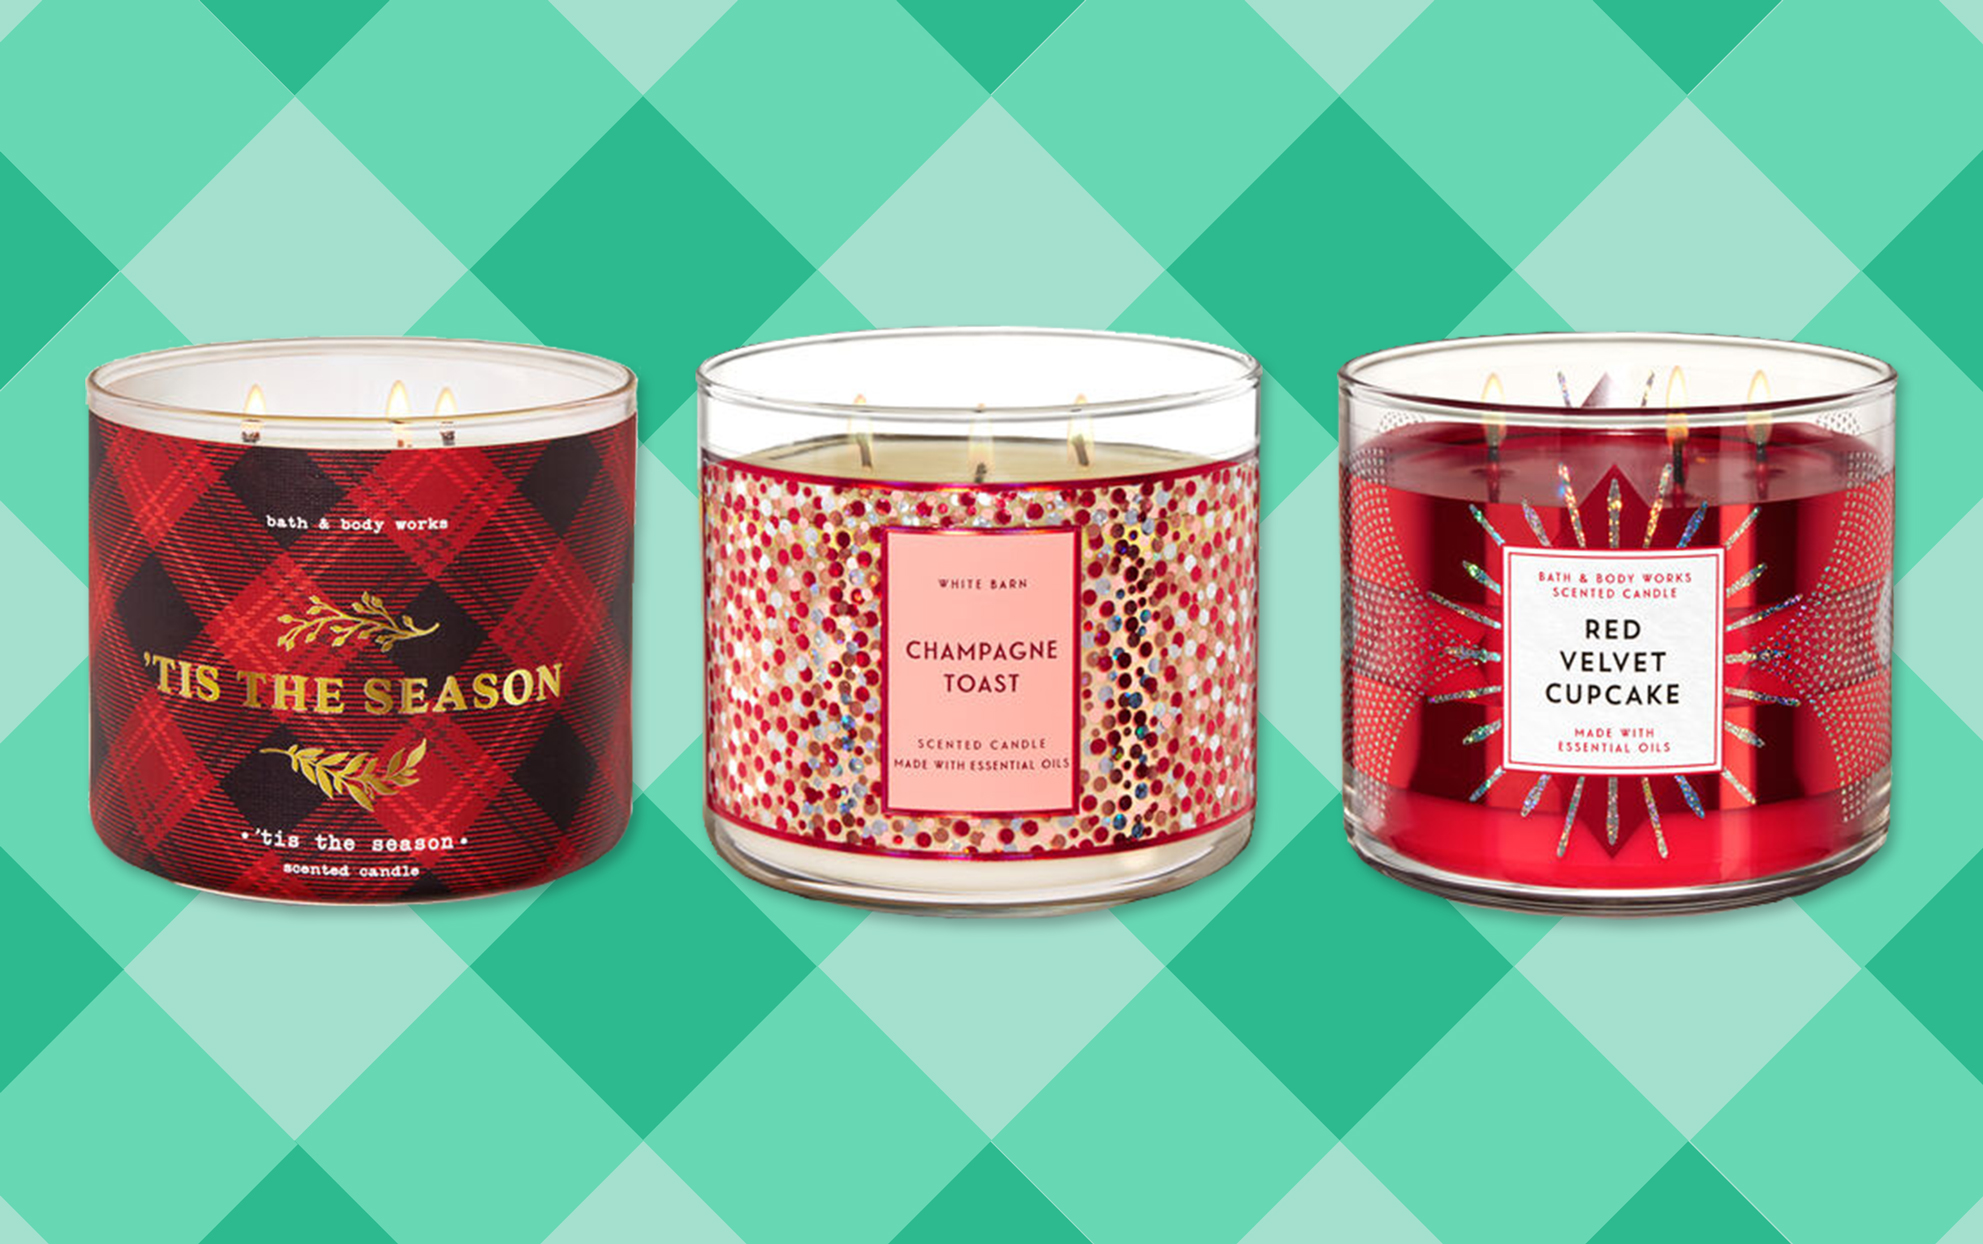 Bath And Body Works 2020 Candle Christmas Scents The Bath & Body Works 2019 Holiday Collection Is Here | Better